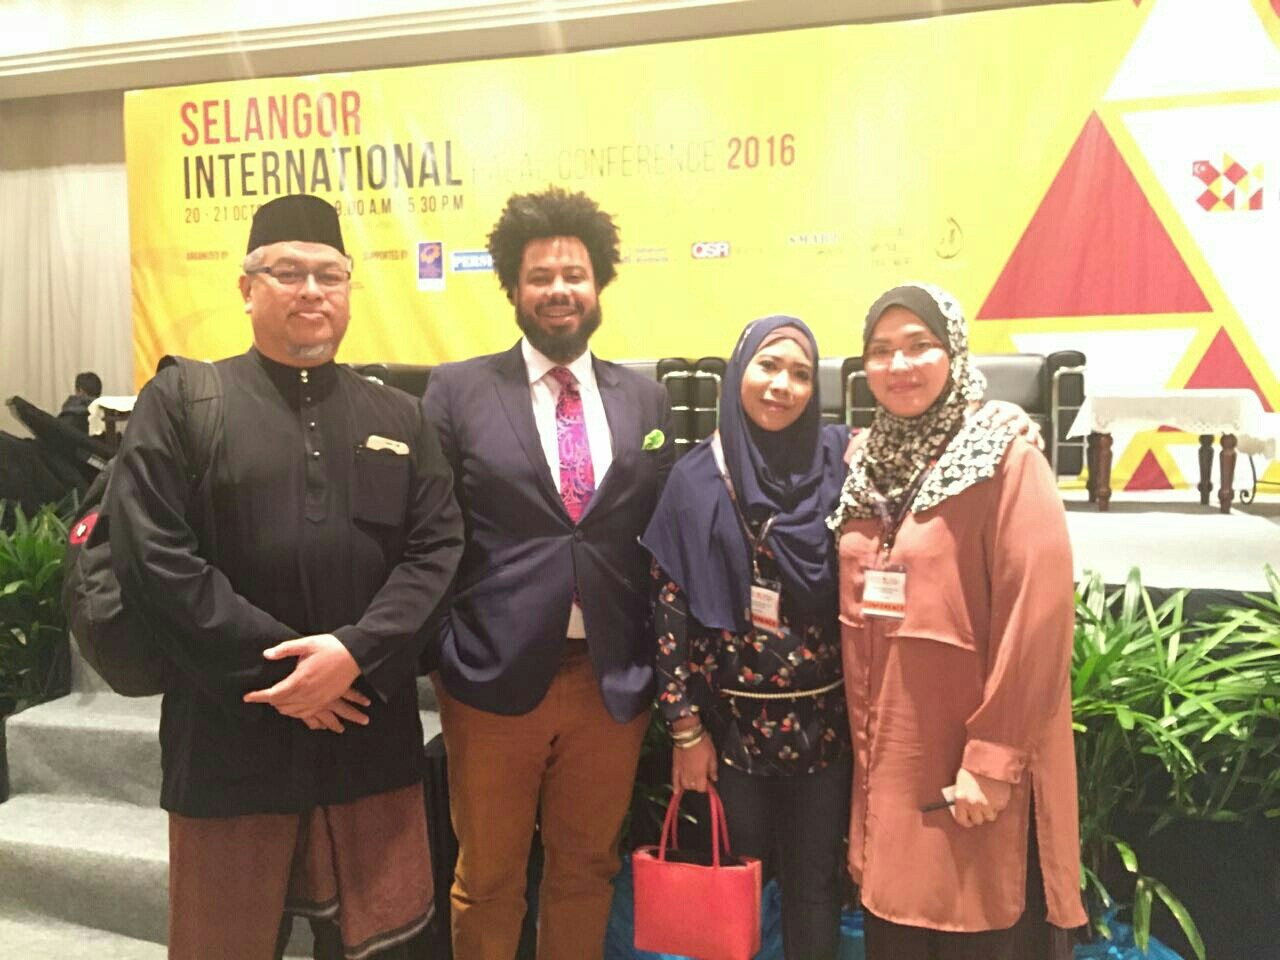 sleangor-international-halal-conference-2016-1